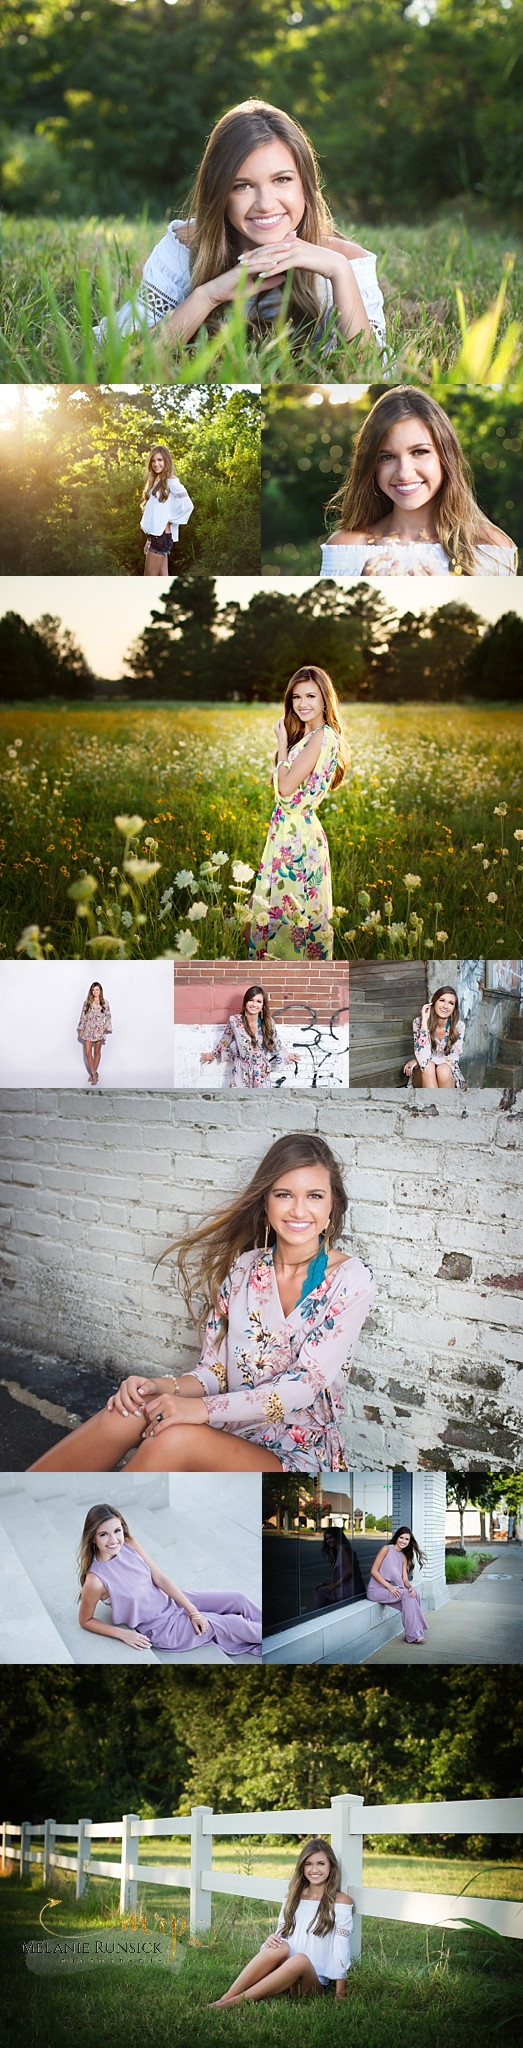 Melanie Runsick Photography Rivercrest Senior Photographer Jonesboro Ar